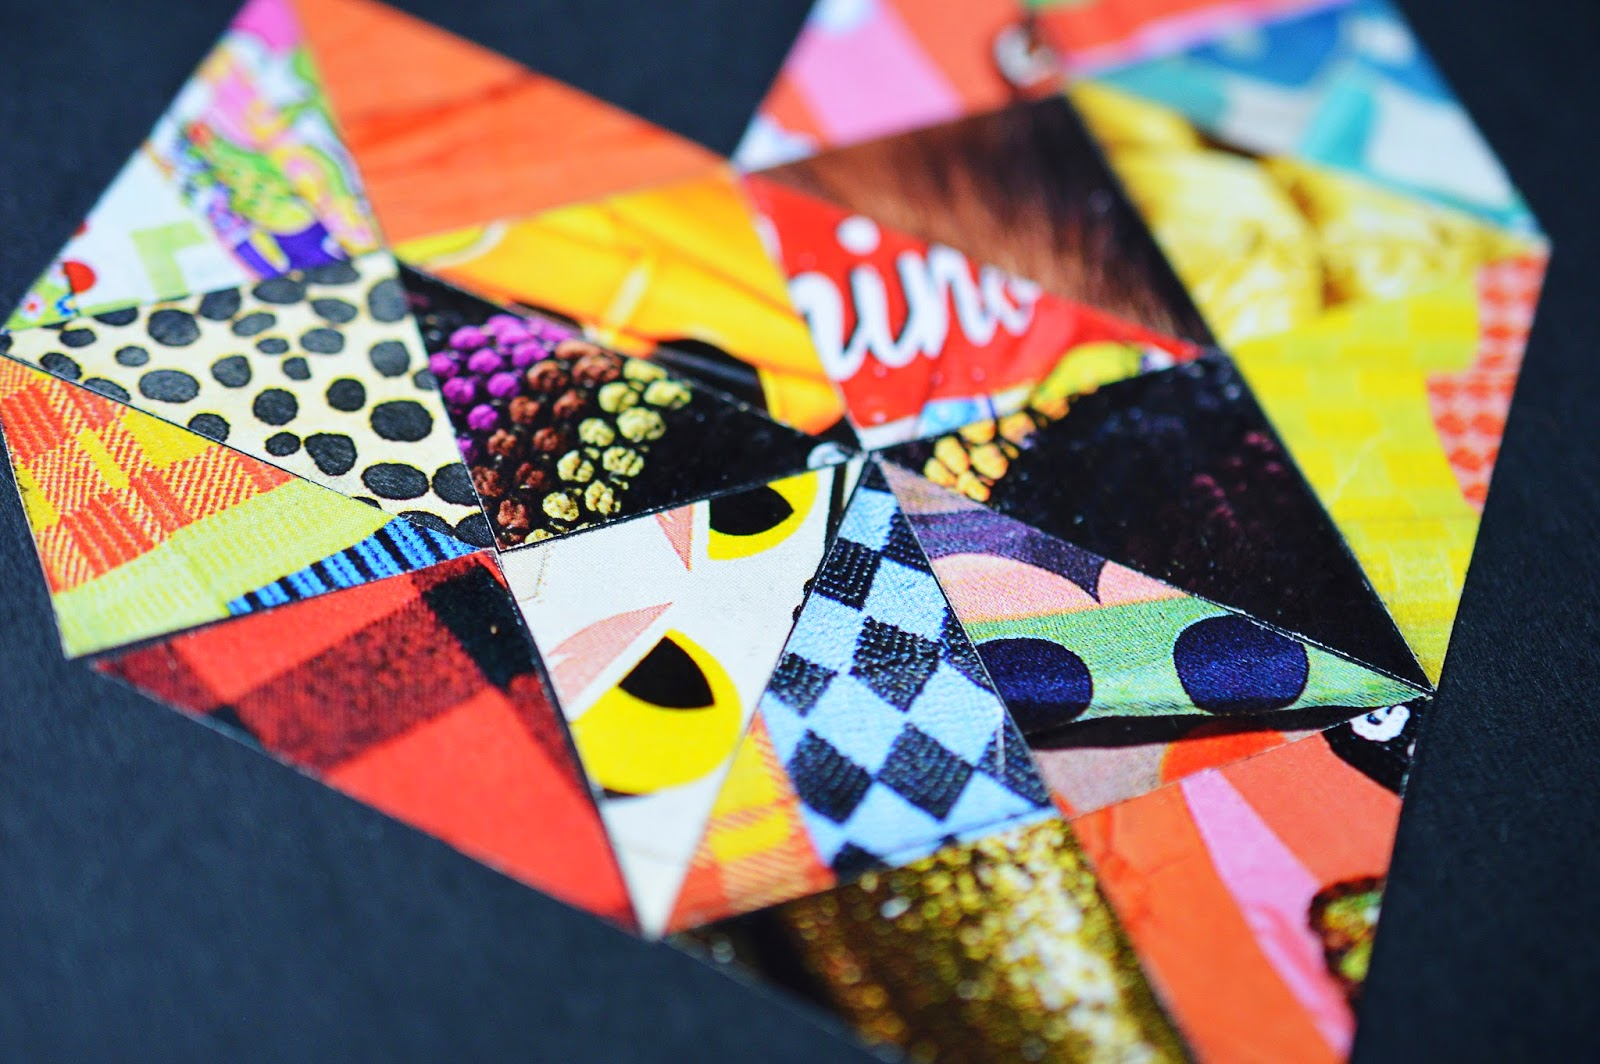 DIY Fashion Magazine Collage Notebook Cover | Motte's Blog